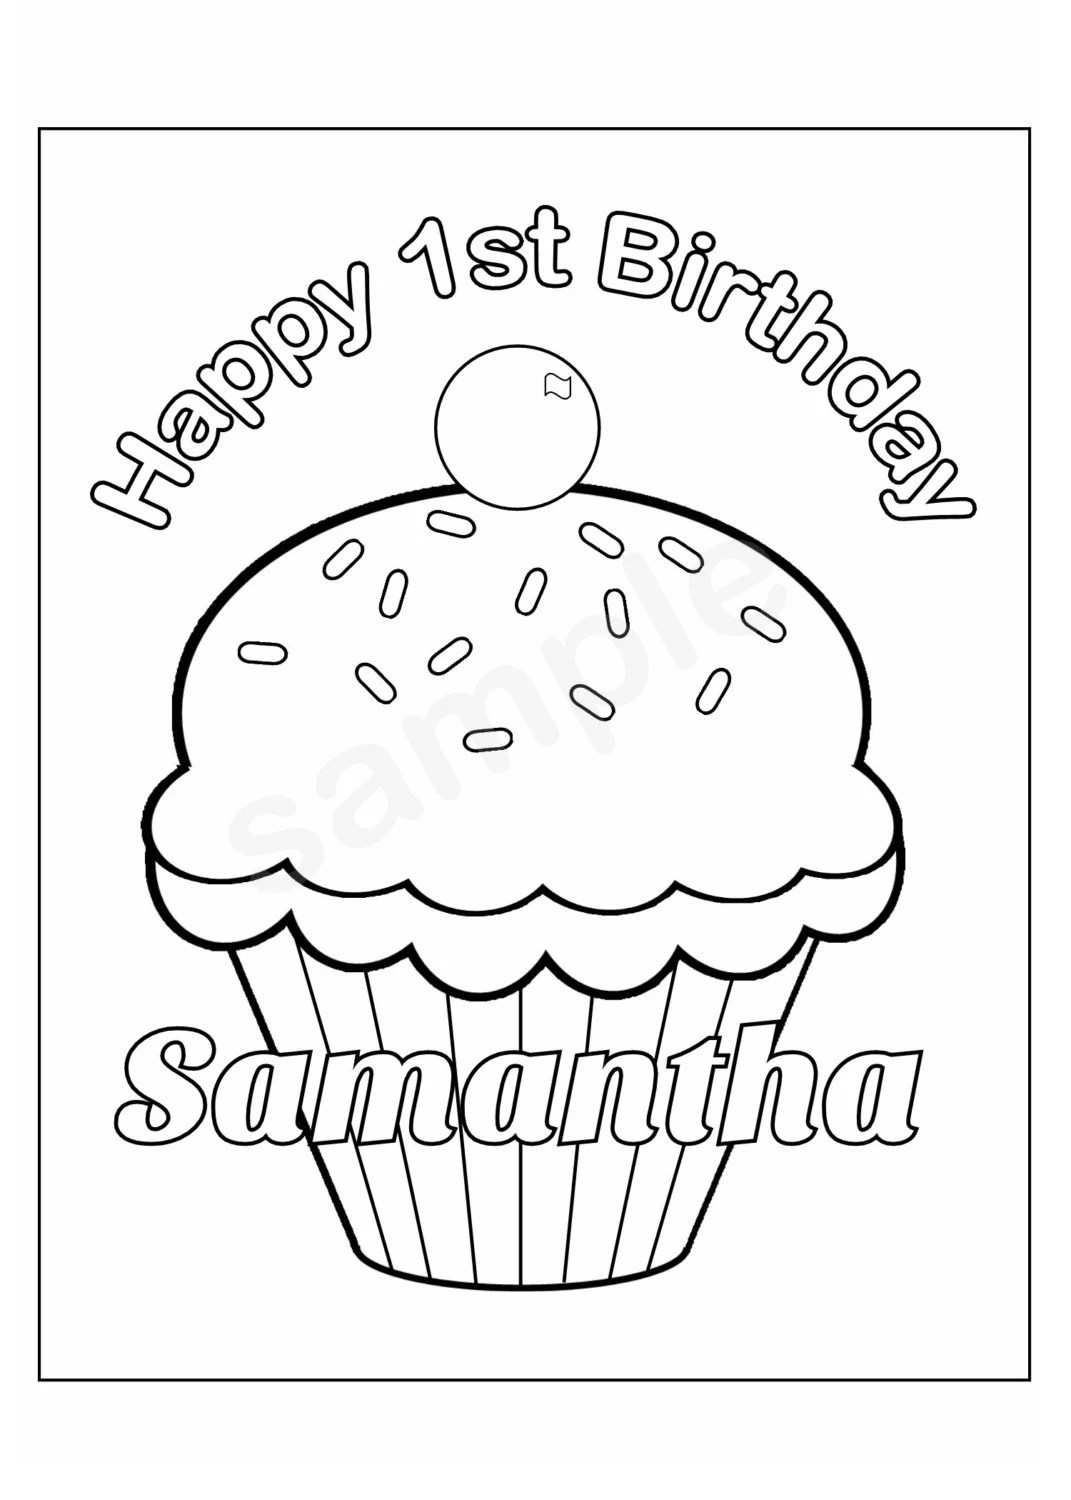 Personalized Printable Birthday Cupcake cup cake by